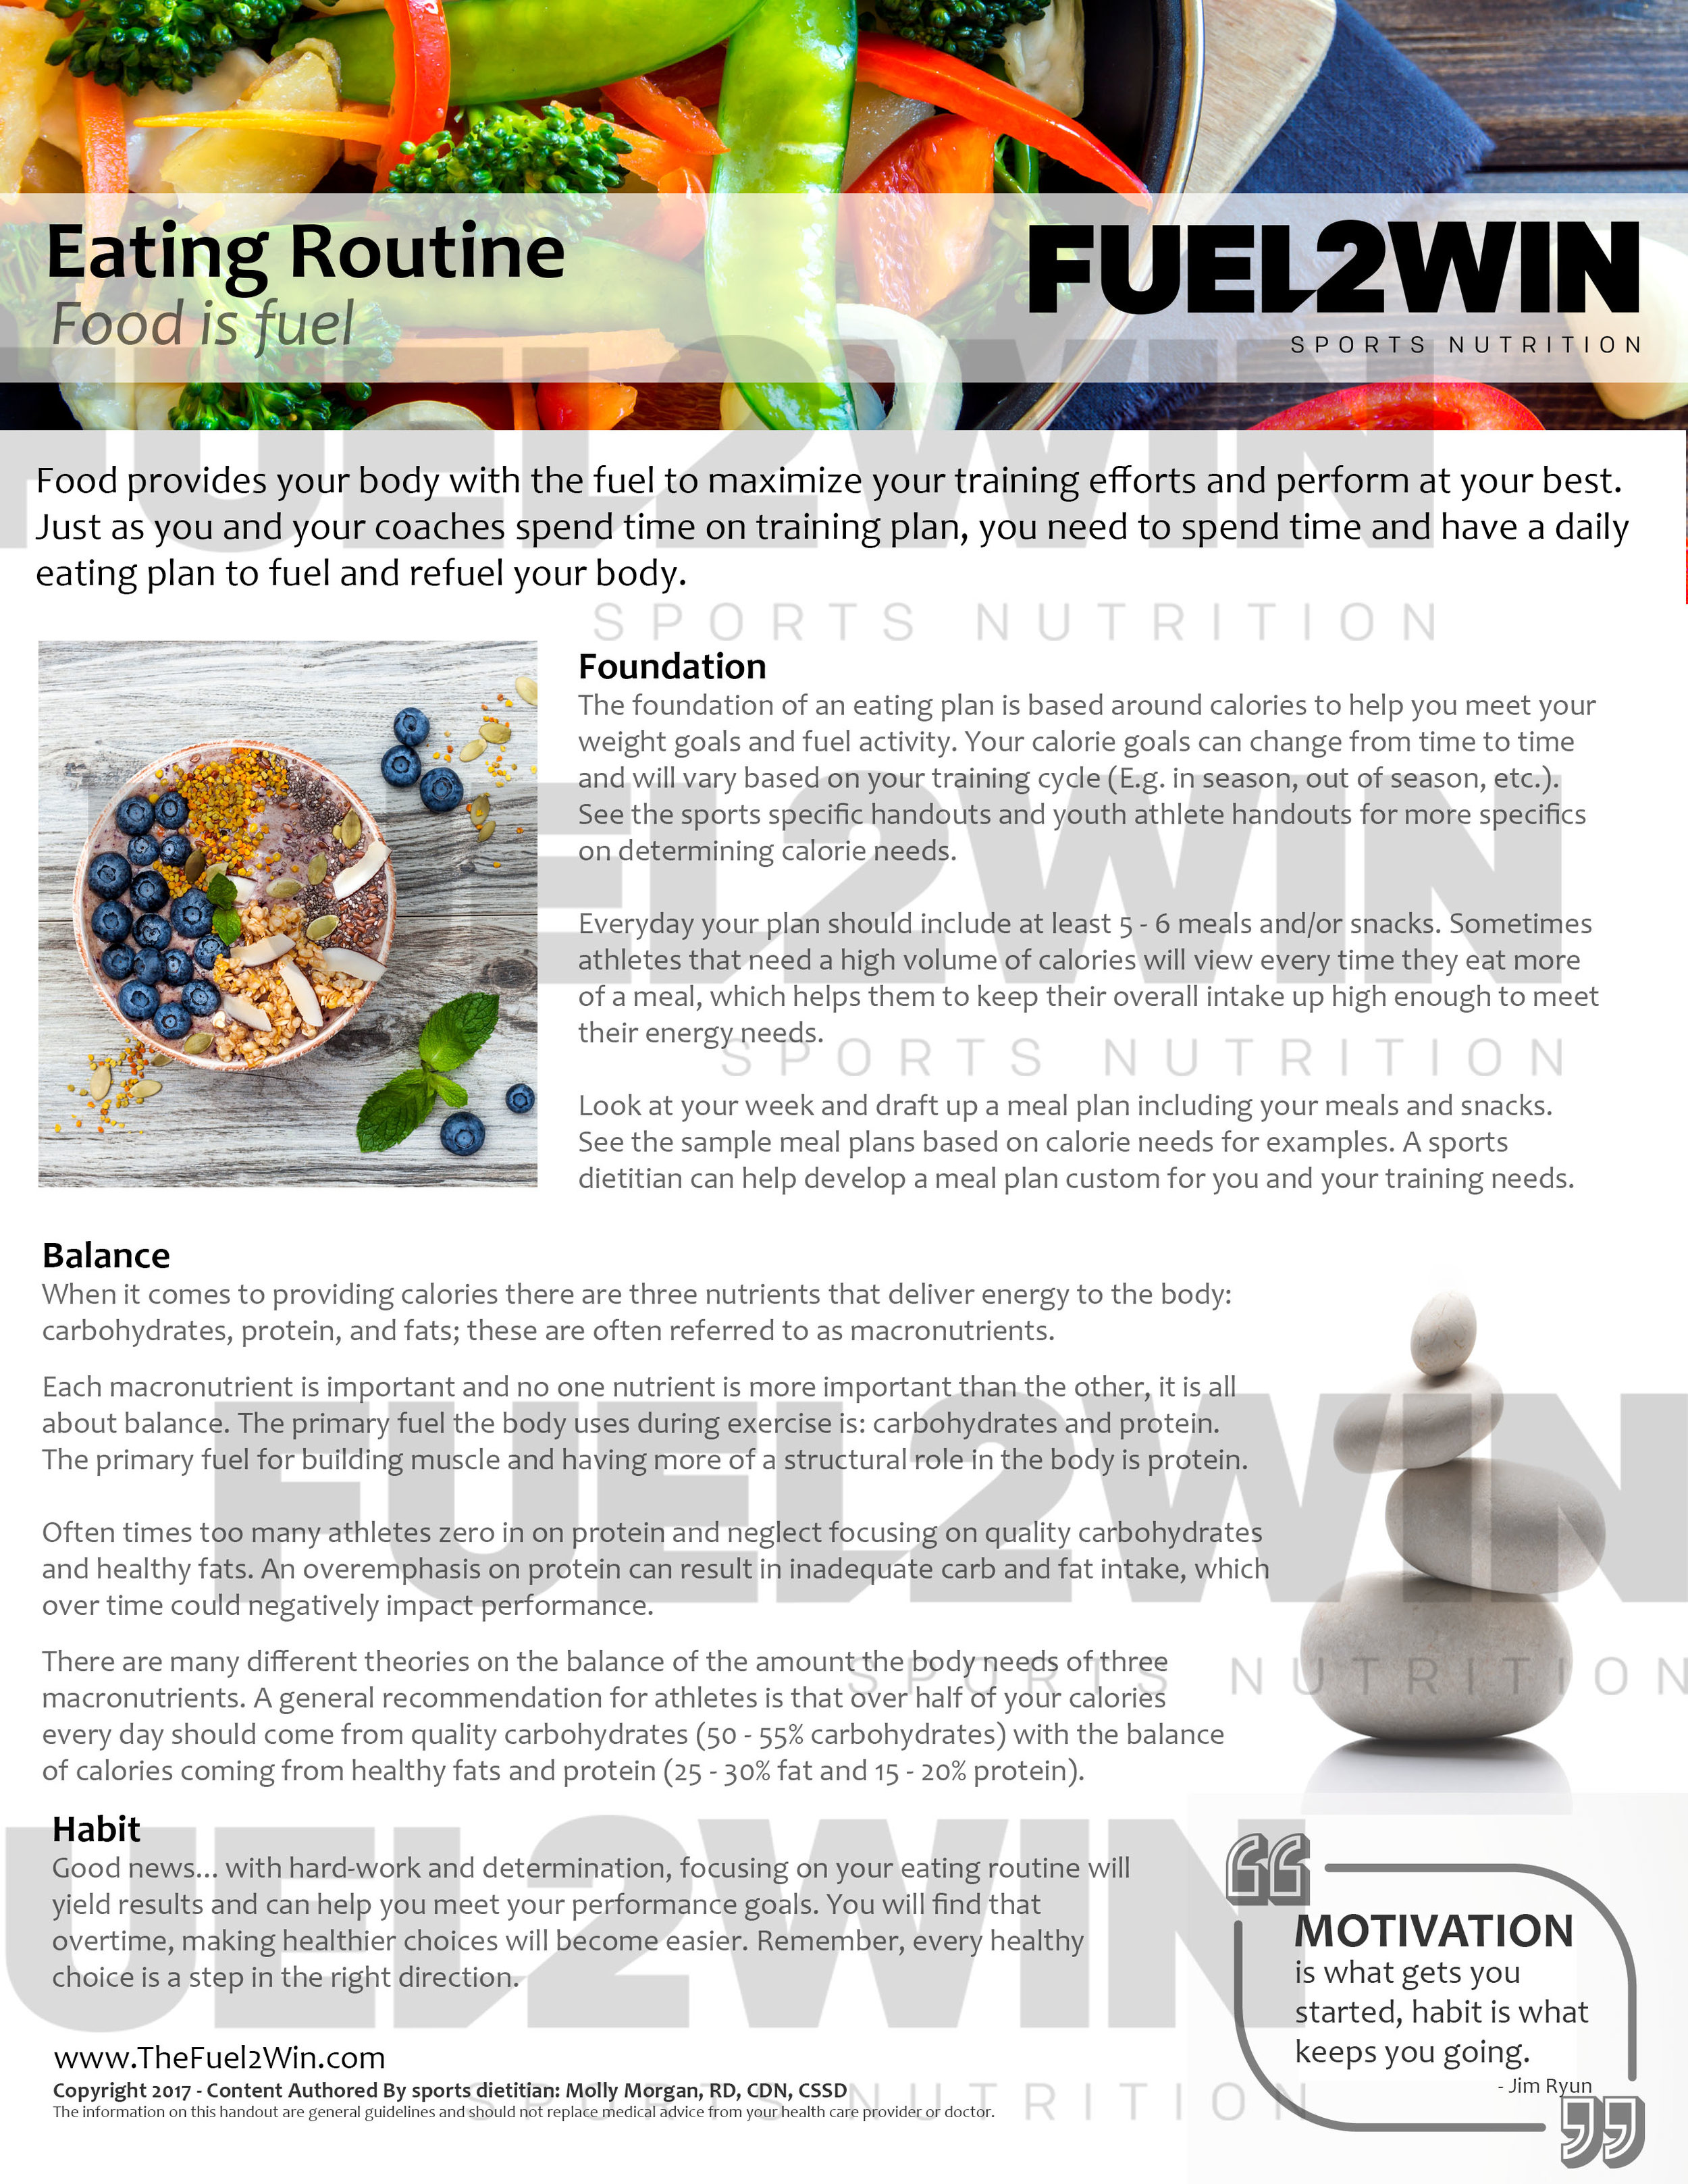 Click on the image above to download the Eating Routine handout.   Note - the downloaded version will not have the Fuel2Win logo watermarked and will be easy to read!